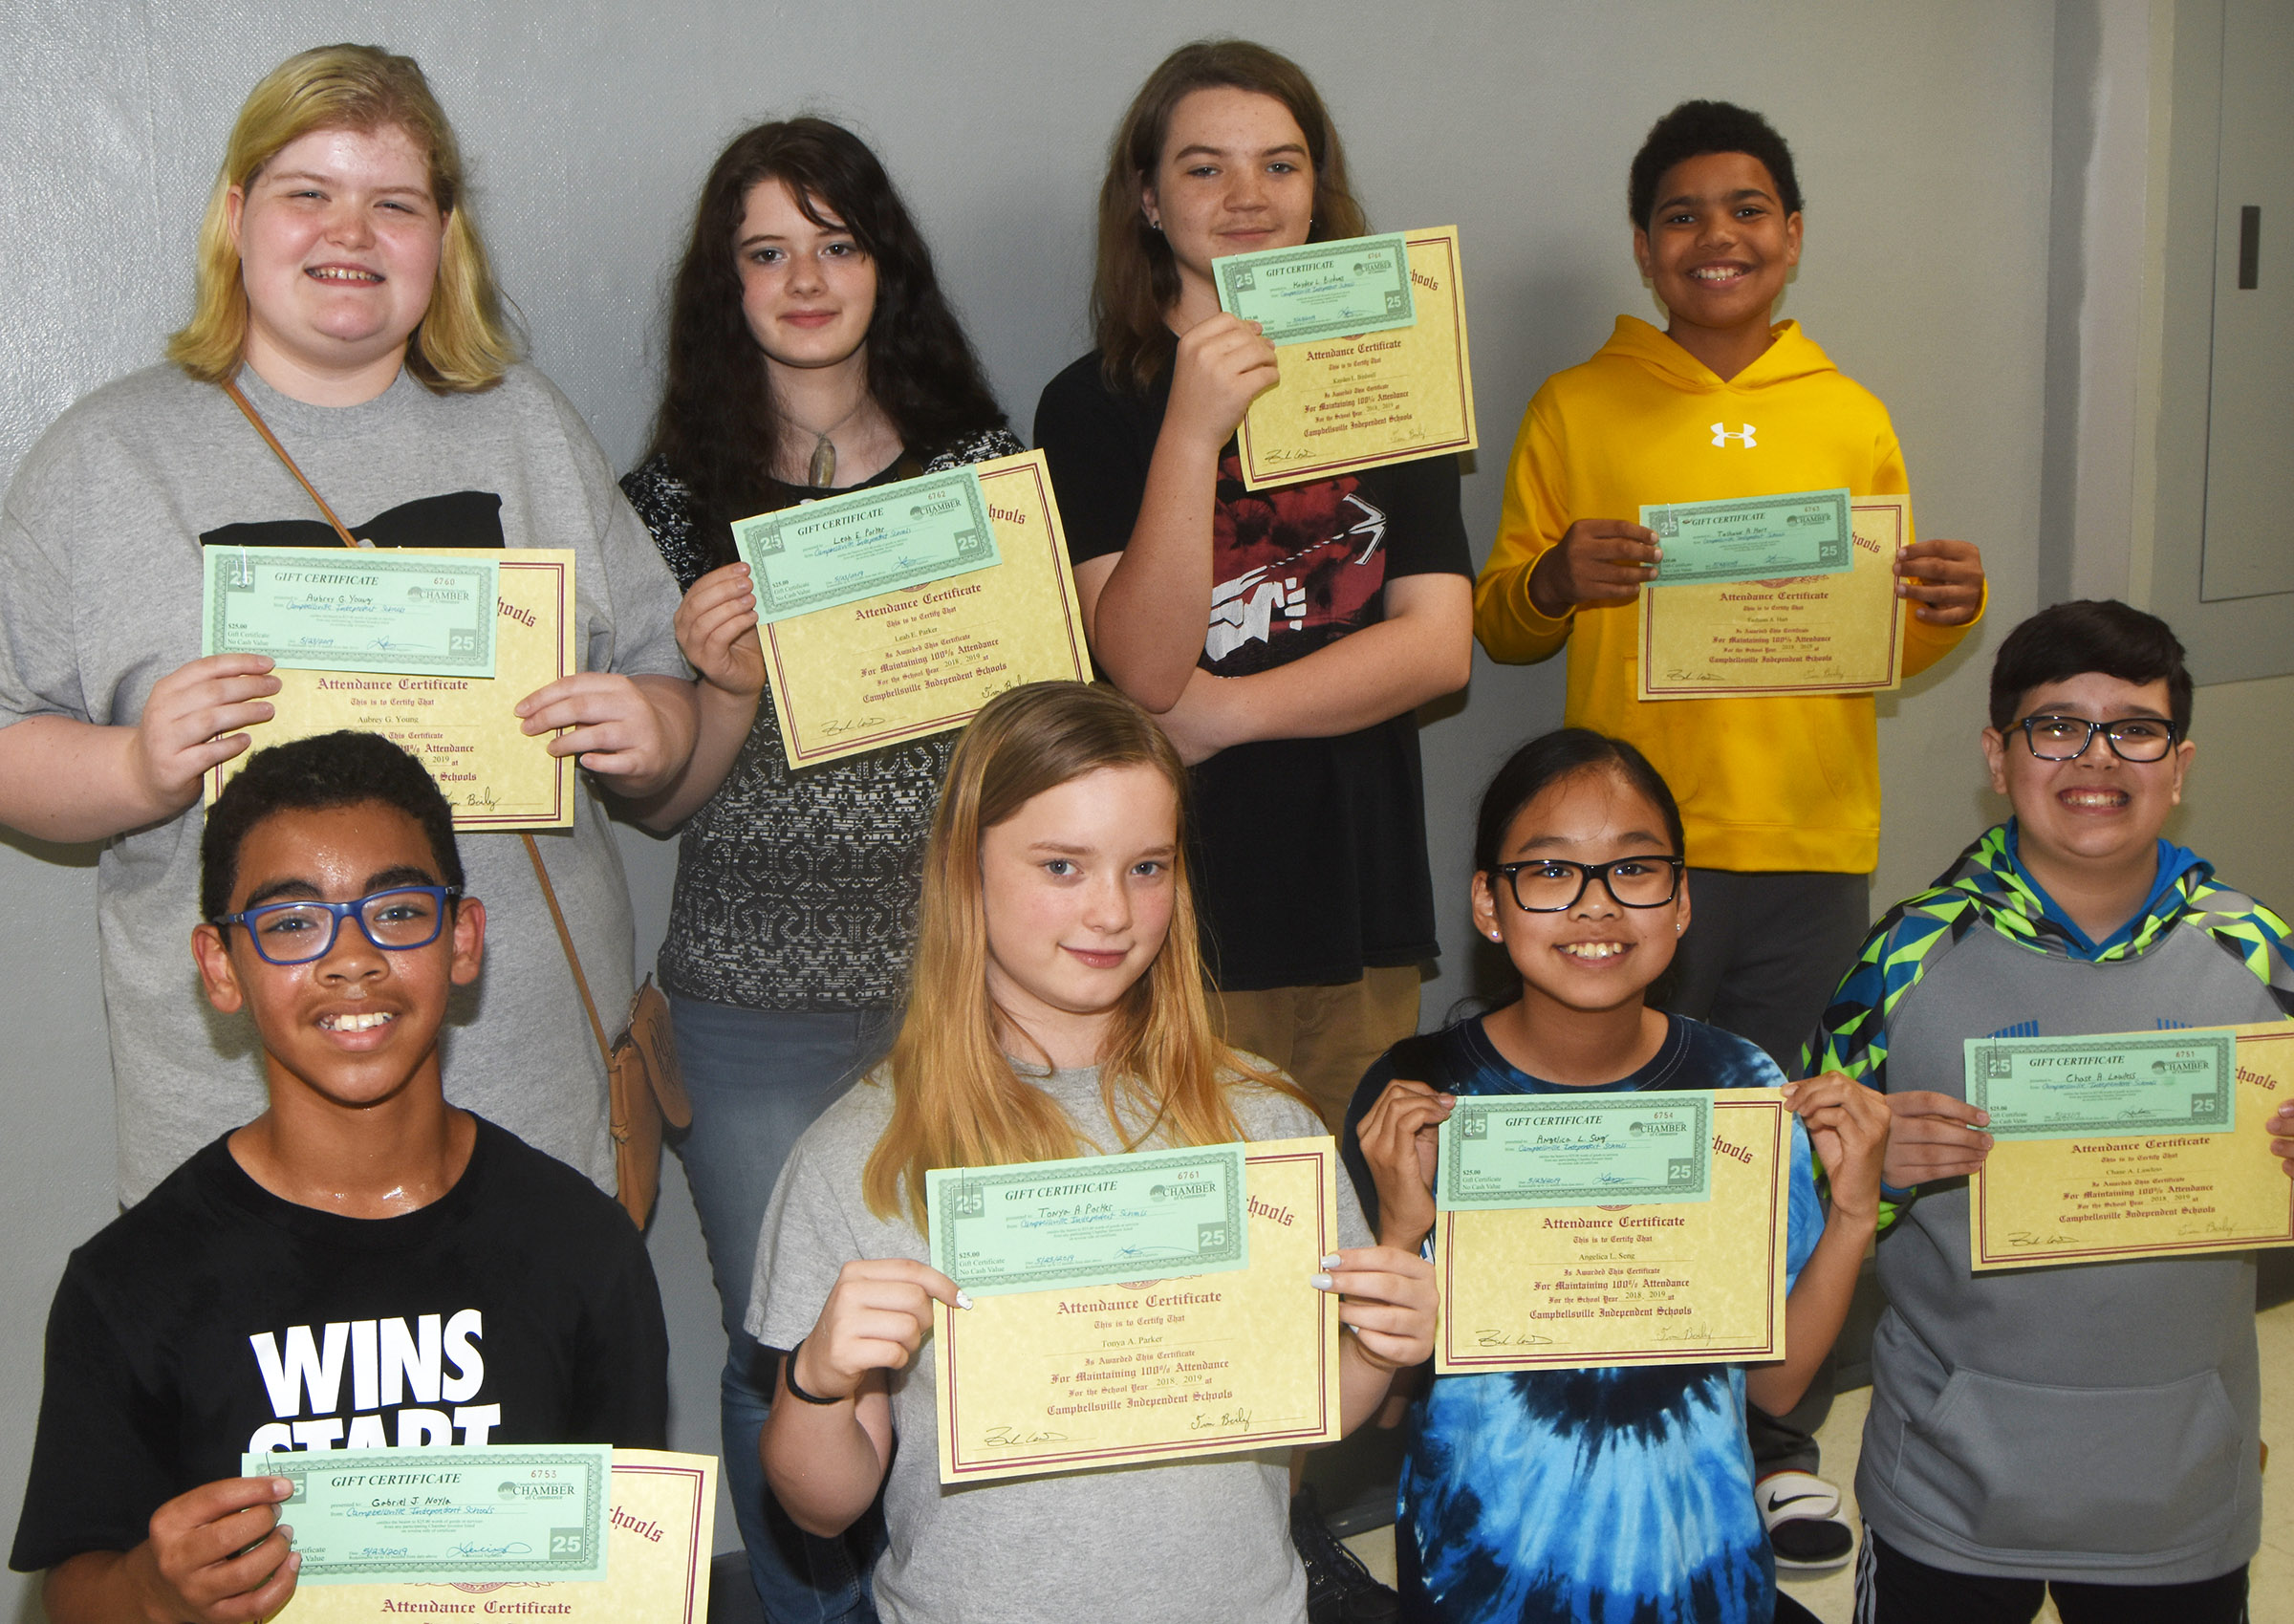 Campbellsville Middle School students honored for having perfect attendance in the 2018-2019 school year are, from left, front, sixth-graders Gabriel Noyola and Kyra Parker and seventh-graders Angelica Seng and Chase Lawless. Back, eighth-graders Aubrey Young and Leah Parker and seventh-graders Kayden Birdwell and Tashaun Hart.